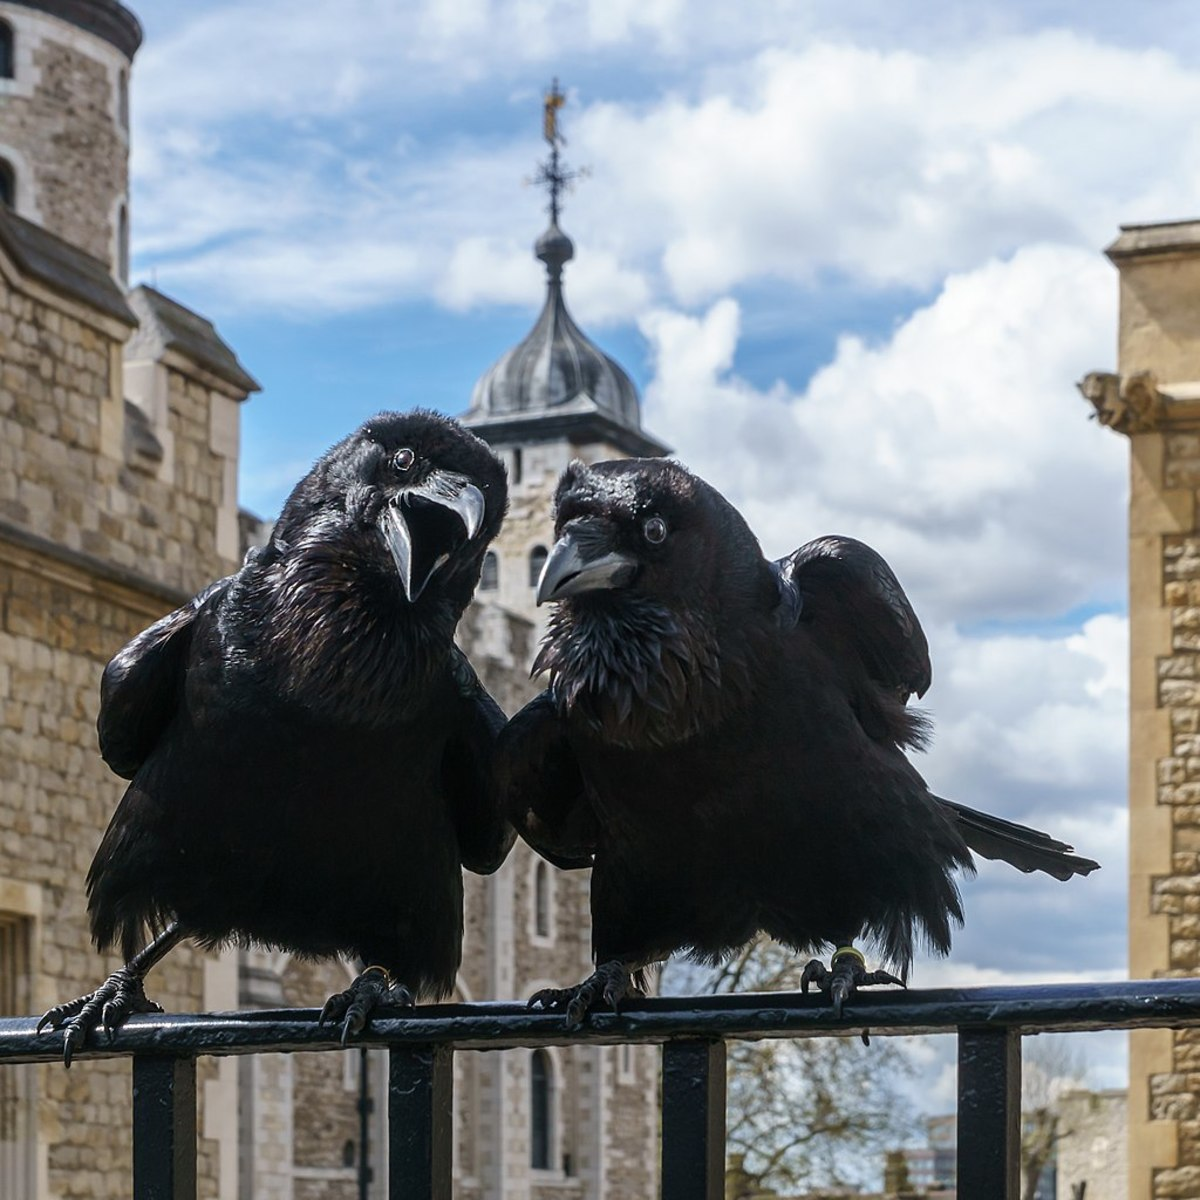 Jubilee & Munin at the Tower of London